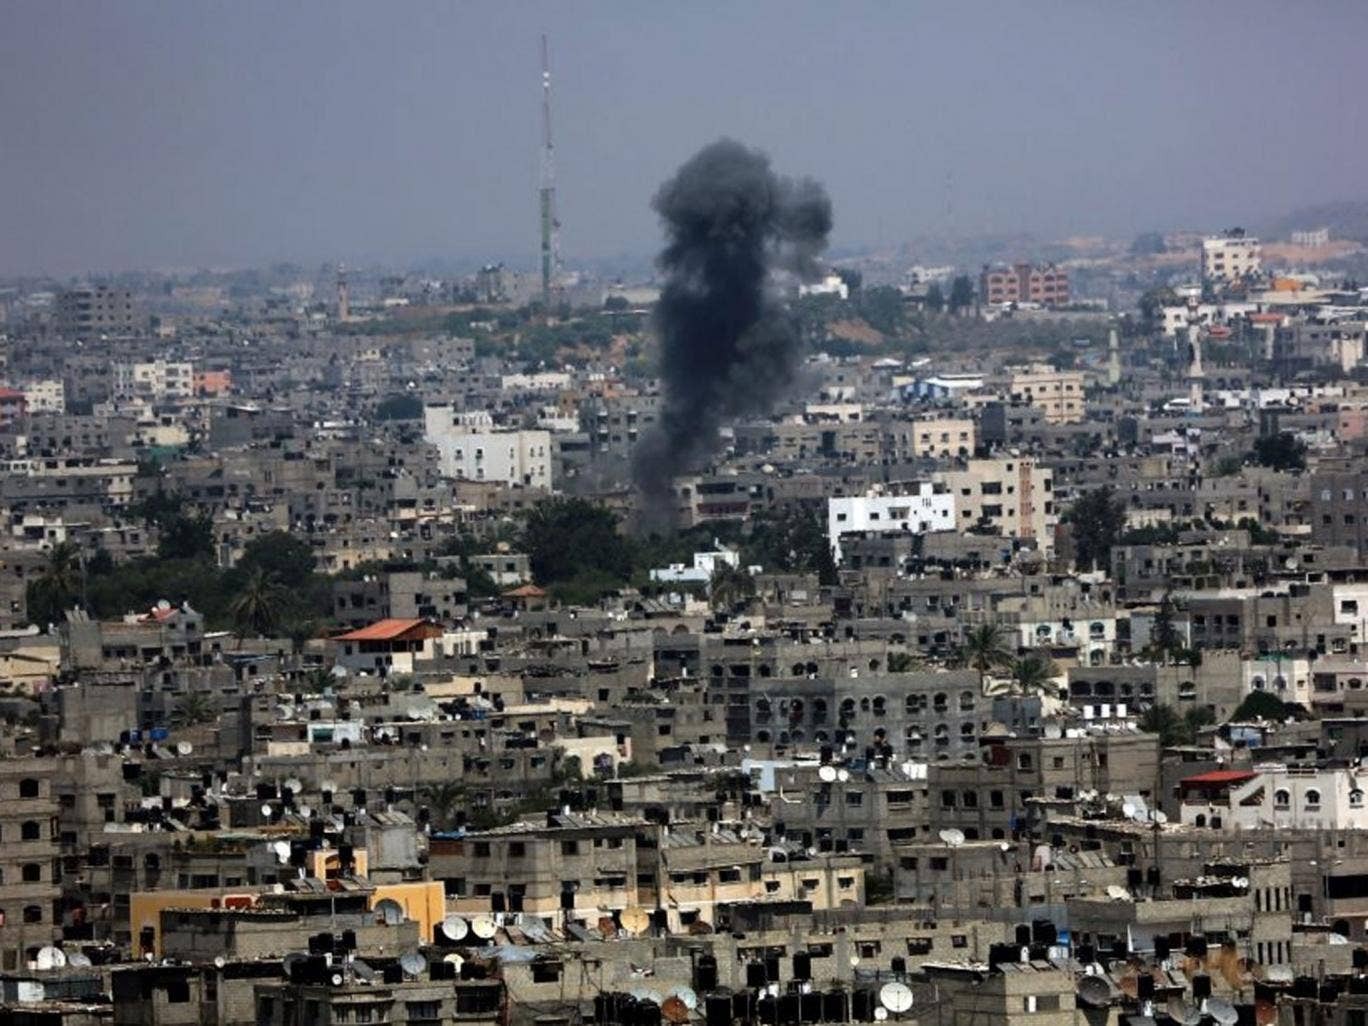 Smoke rises after an Israeli airstrike in the east of Gaza City, 28 July 2014.